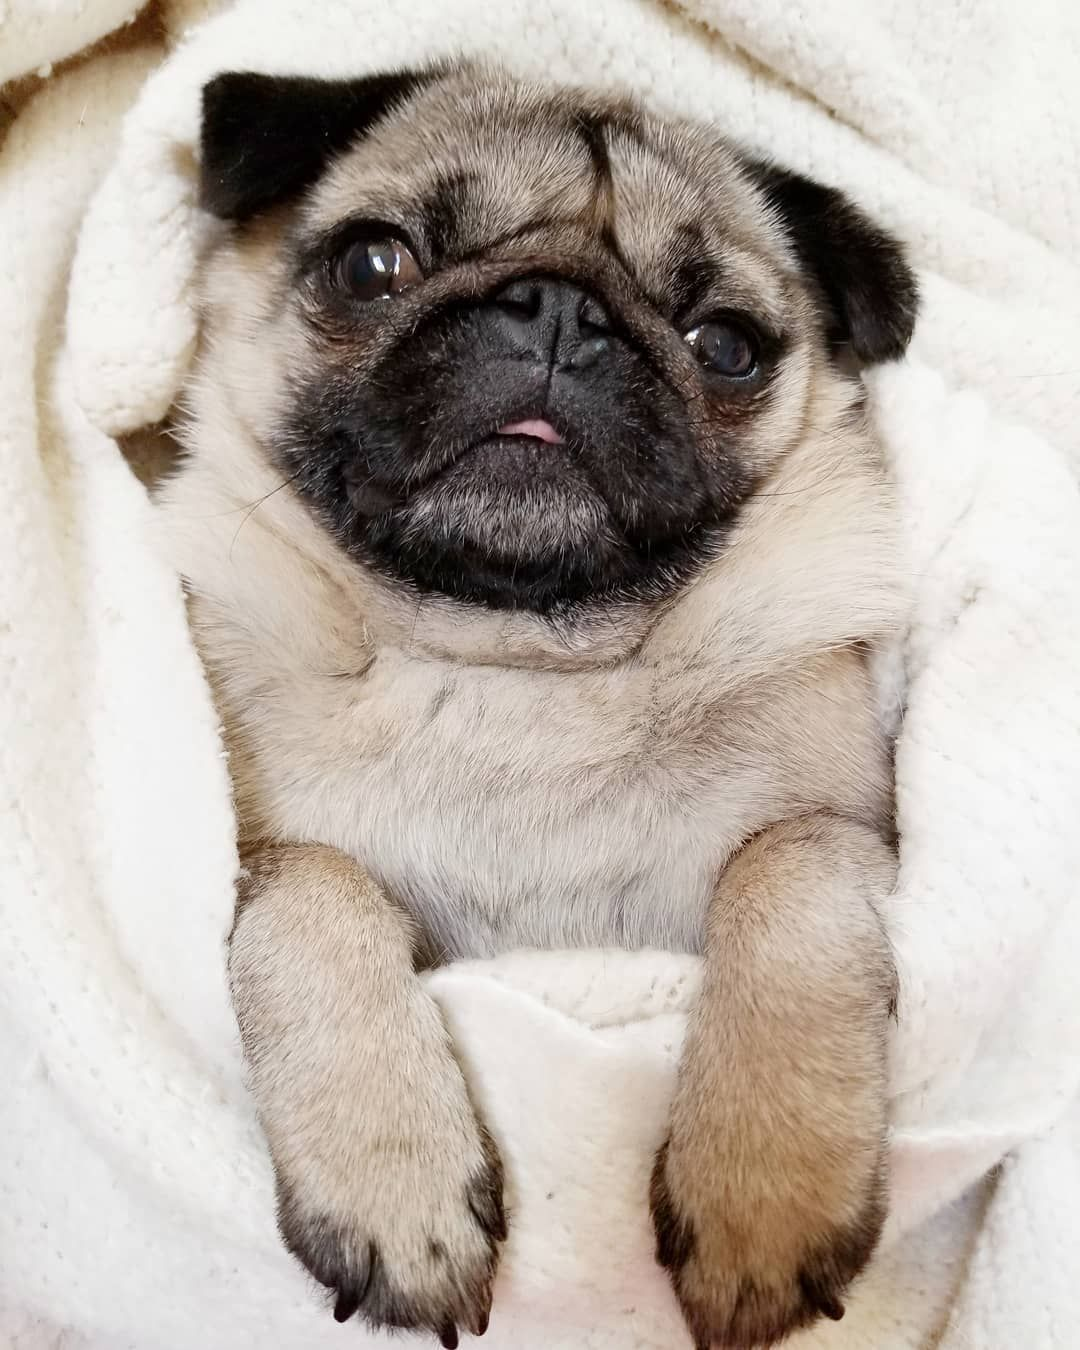 Funny Pugs Dogs Pets Cute Pugs Baby Pugs Cute Animal Pictures